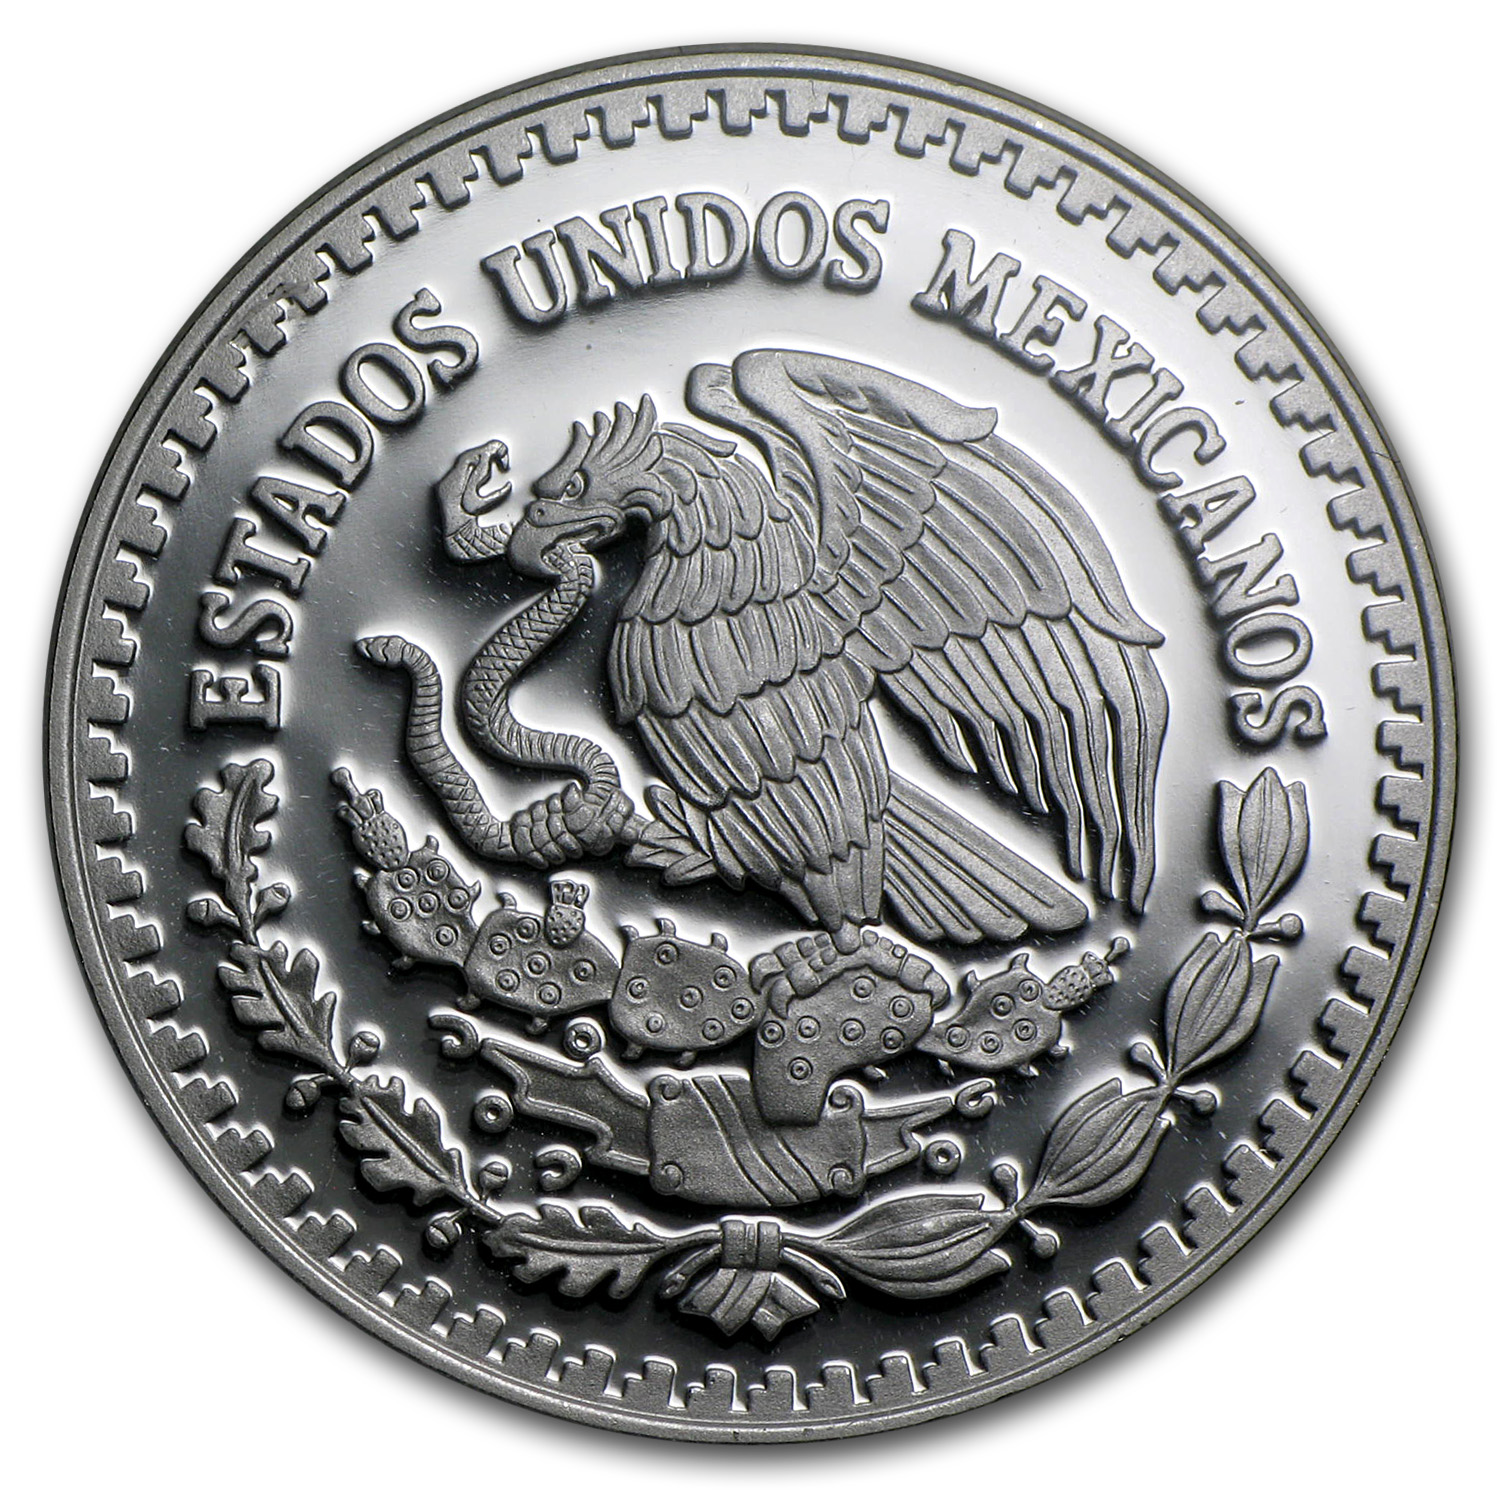 2013 (1/2 oz) Silver Libertad - Proof (In Capsule)